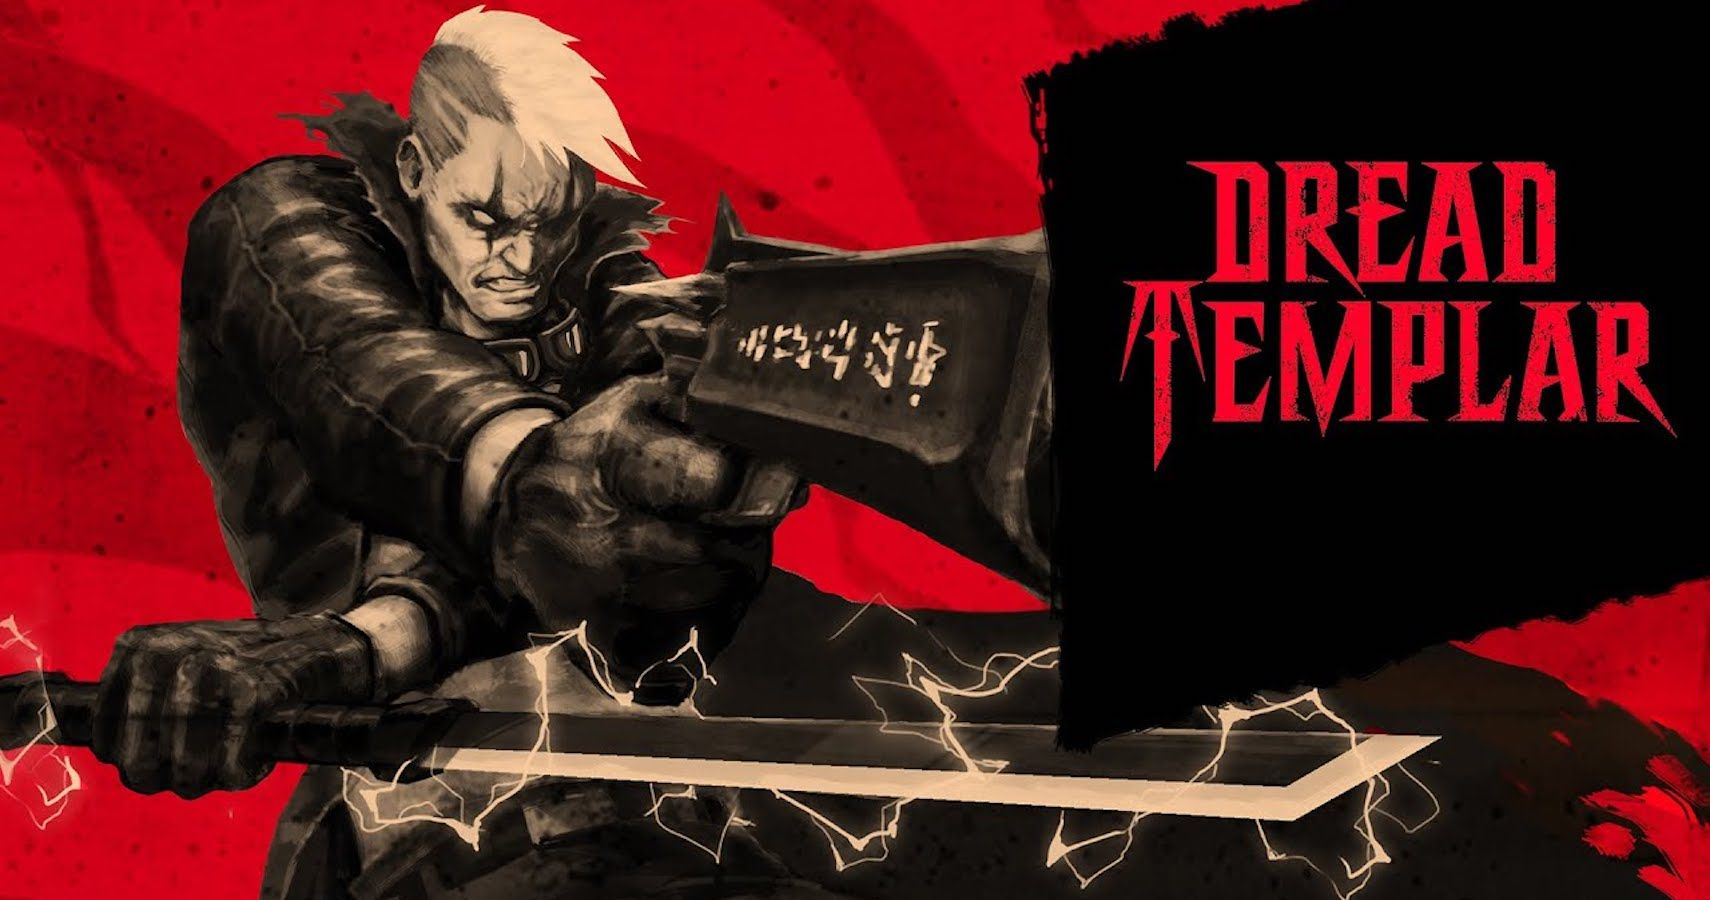 Dread Templar, A Retro First-Person Shooter, Will Launch On Steam Early Access Later This Year